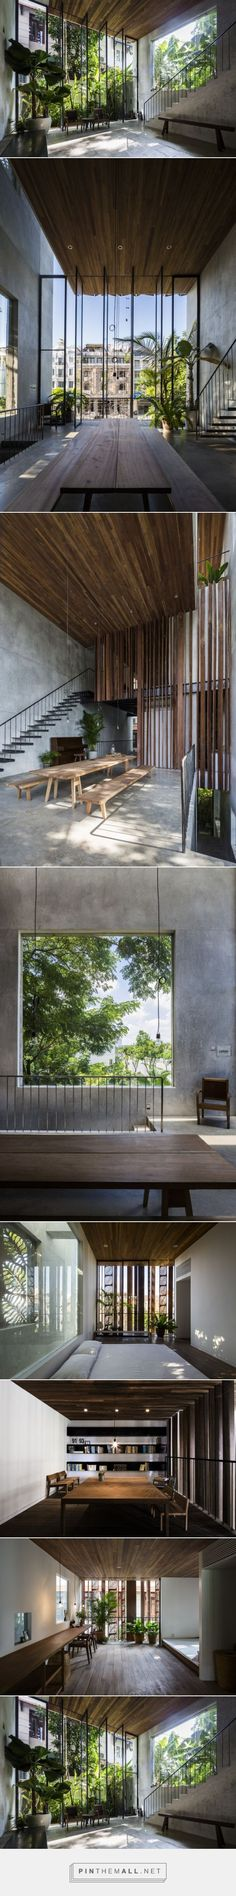 Thong House / Nishizawa Architects | ArchDaily - created via https://pinthemall.net